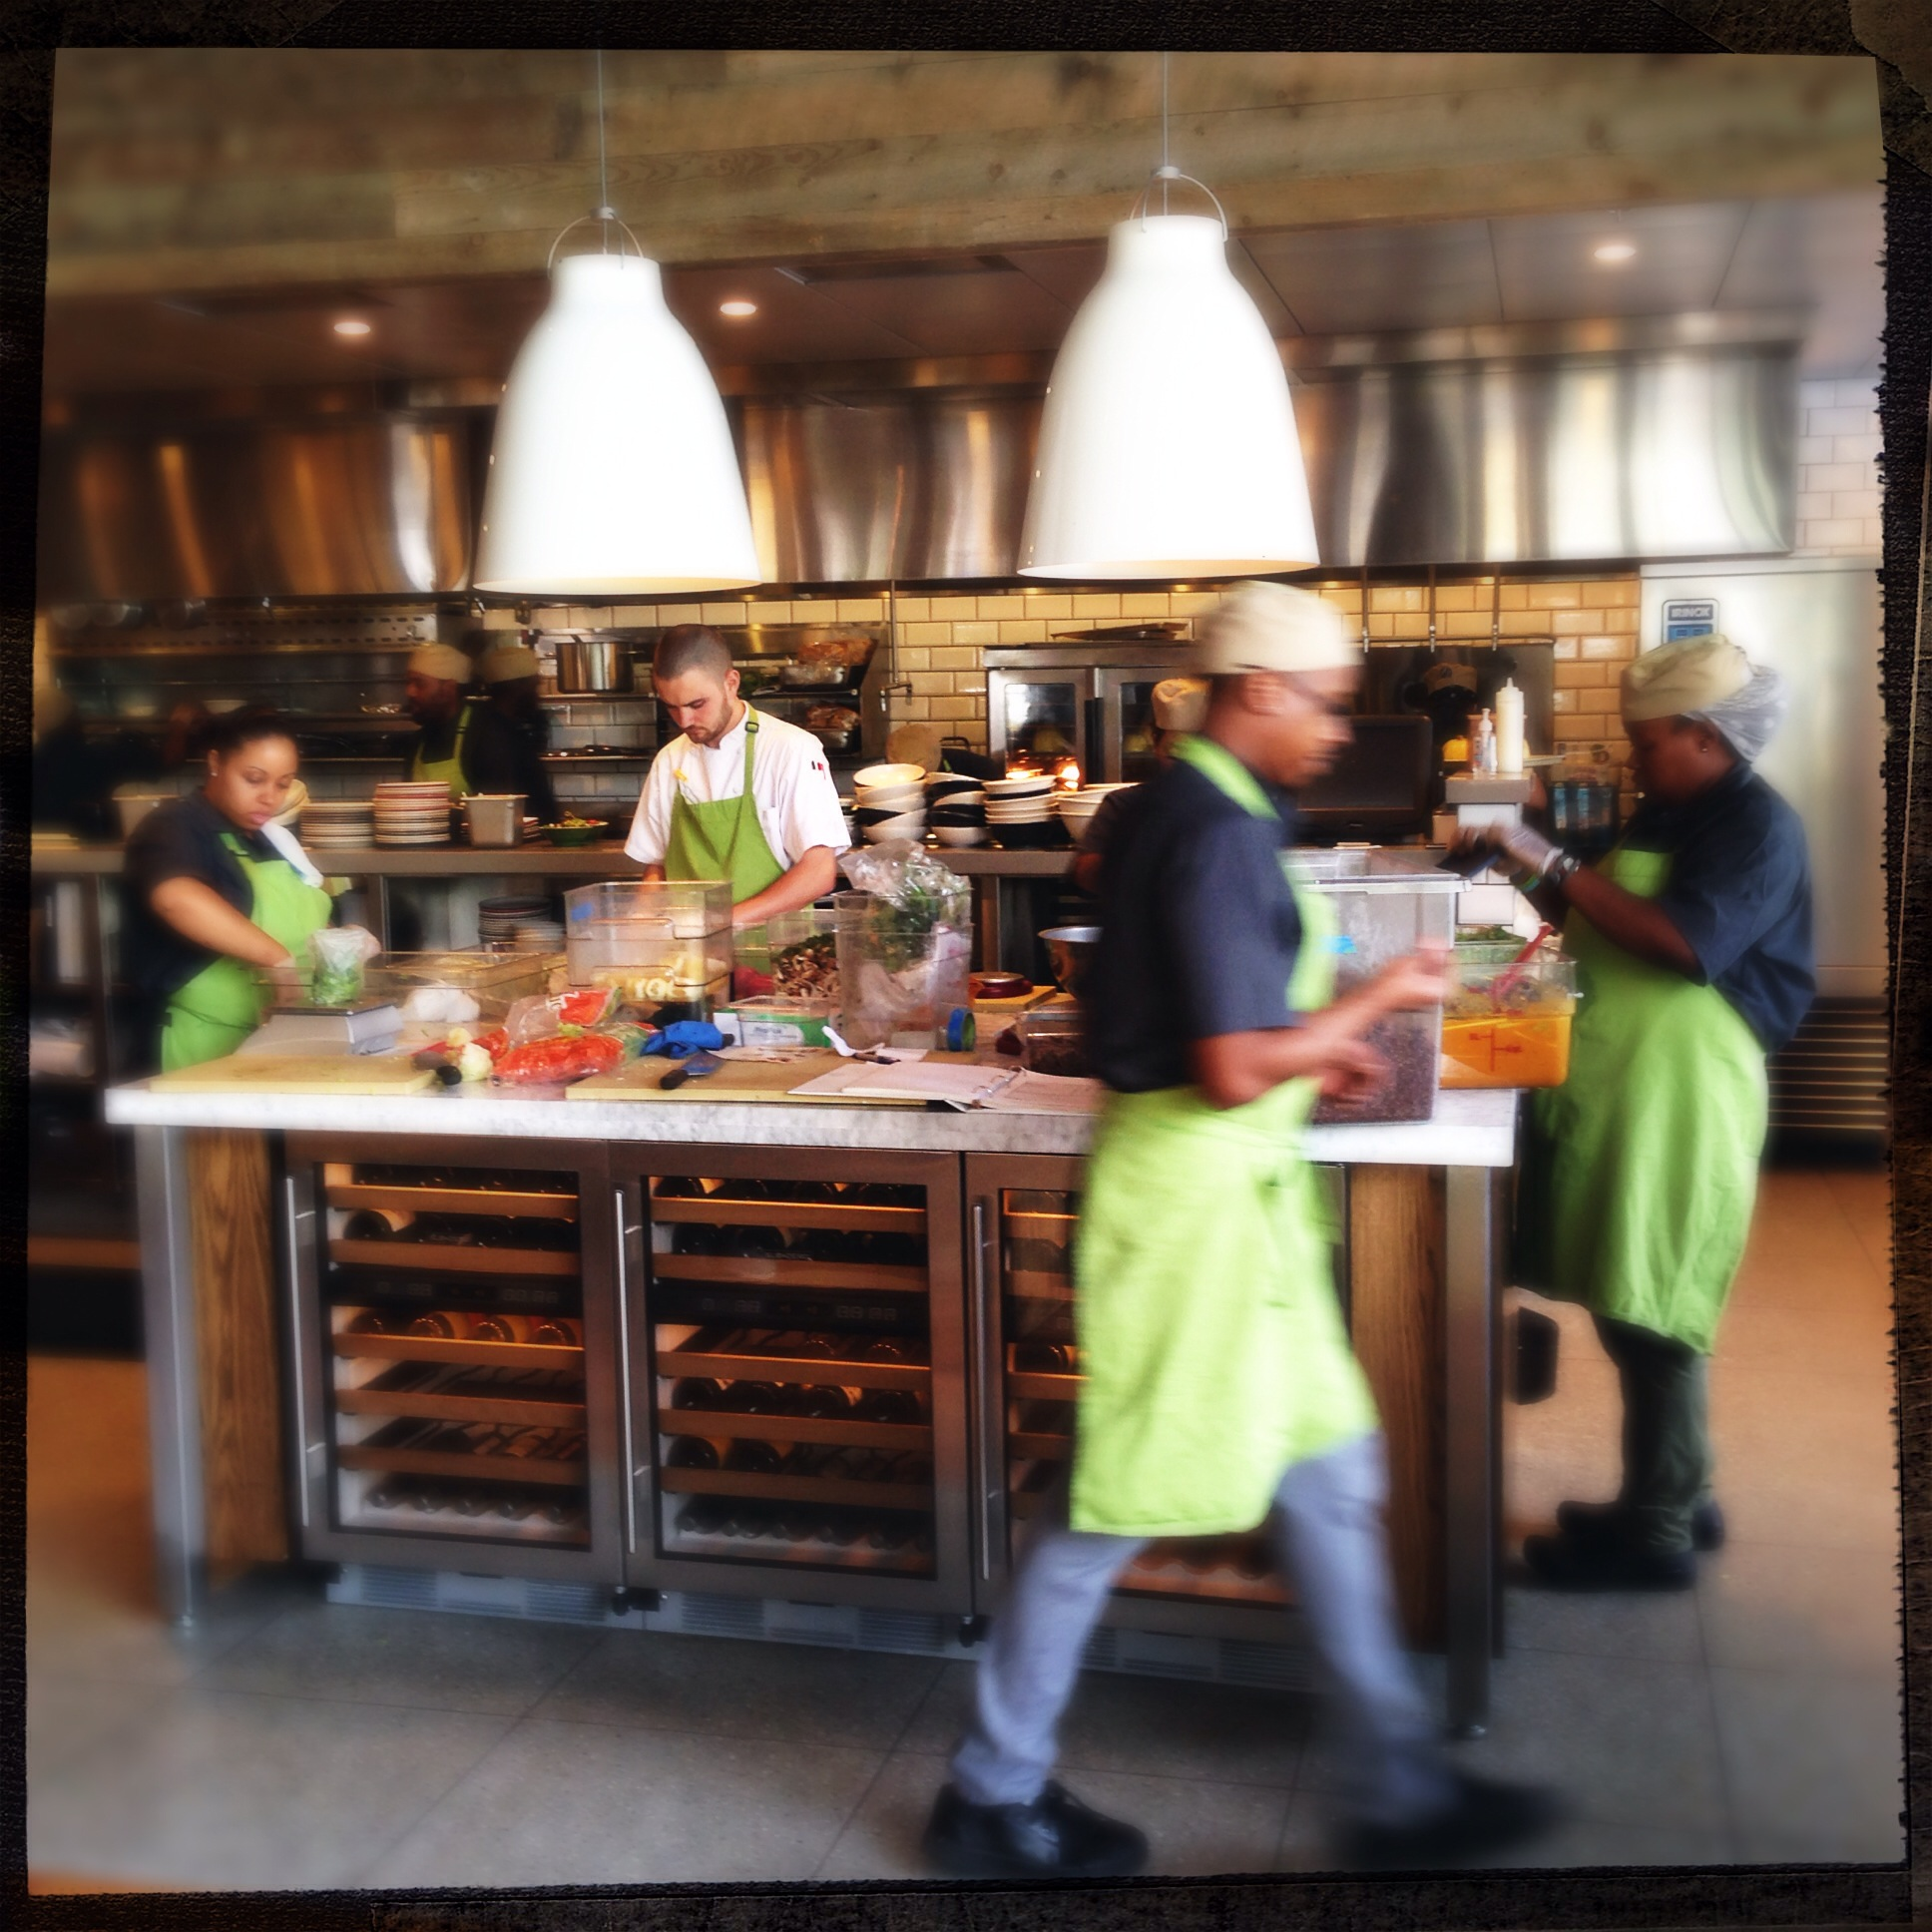 Setting A Higher Bar For Our Children At True Food Kitchen My